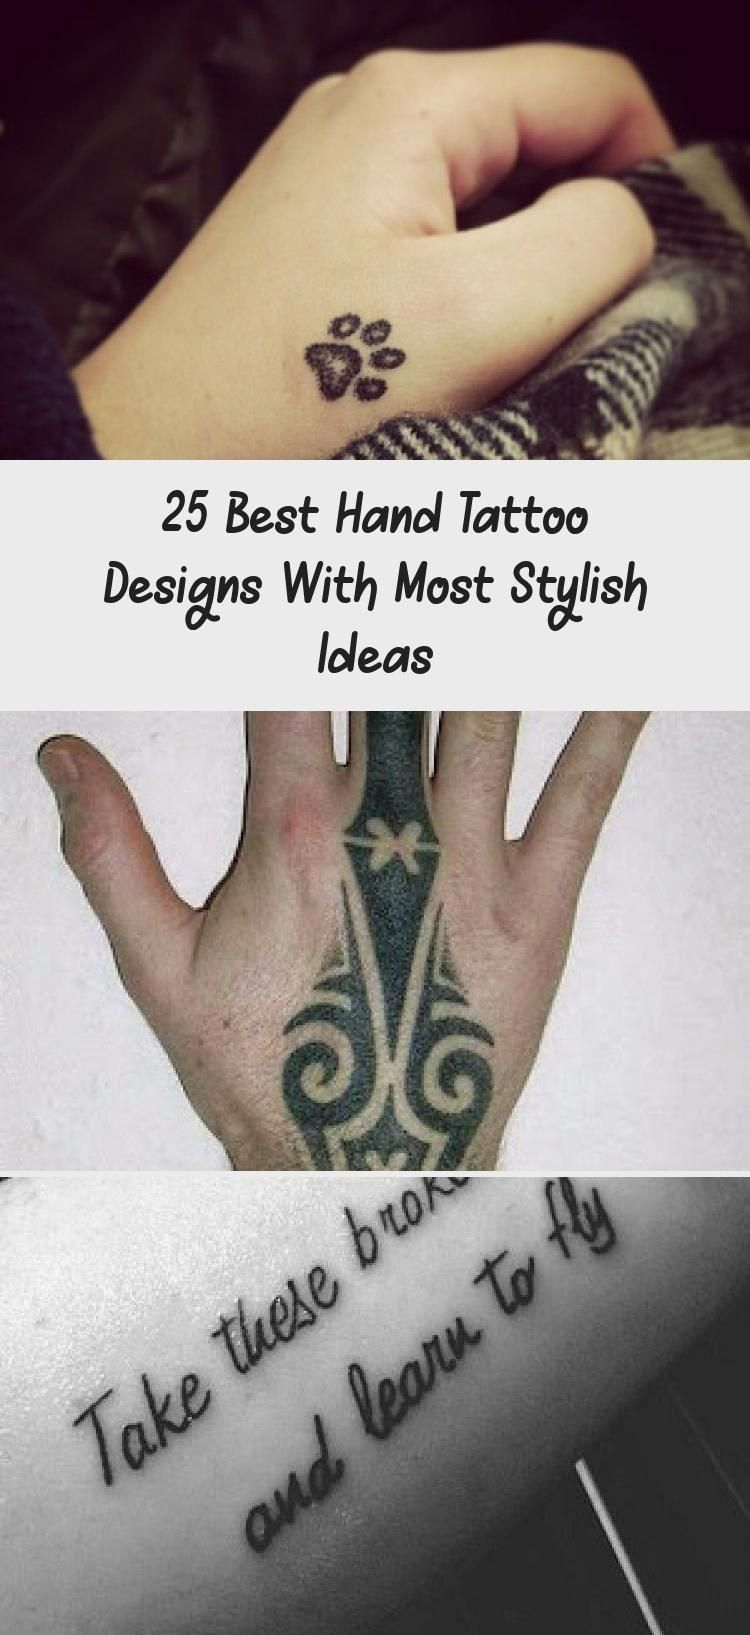 25 Best Meaningful Hand Tattoo Designs For Men And Women Tattoodesignsdisney T 25 Best Meaning In 2020 Tattoo Designs Simple Hand Tattoos Hand Tattoos For Guys